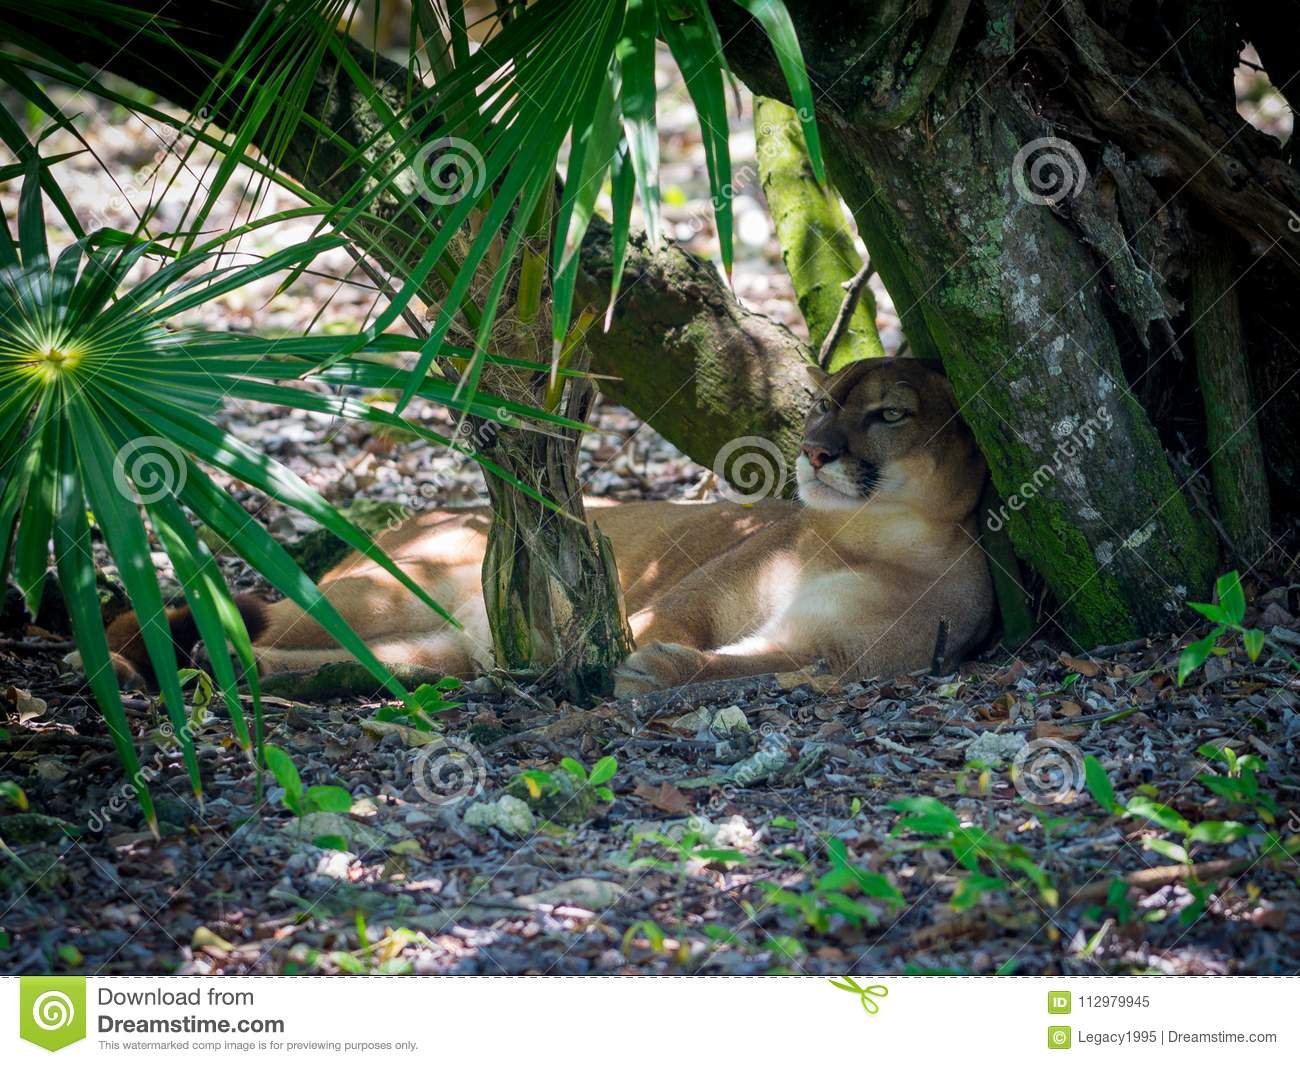 Panther Taking Shade From Hot Tropical Sun in Mexico